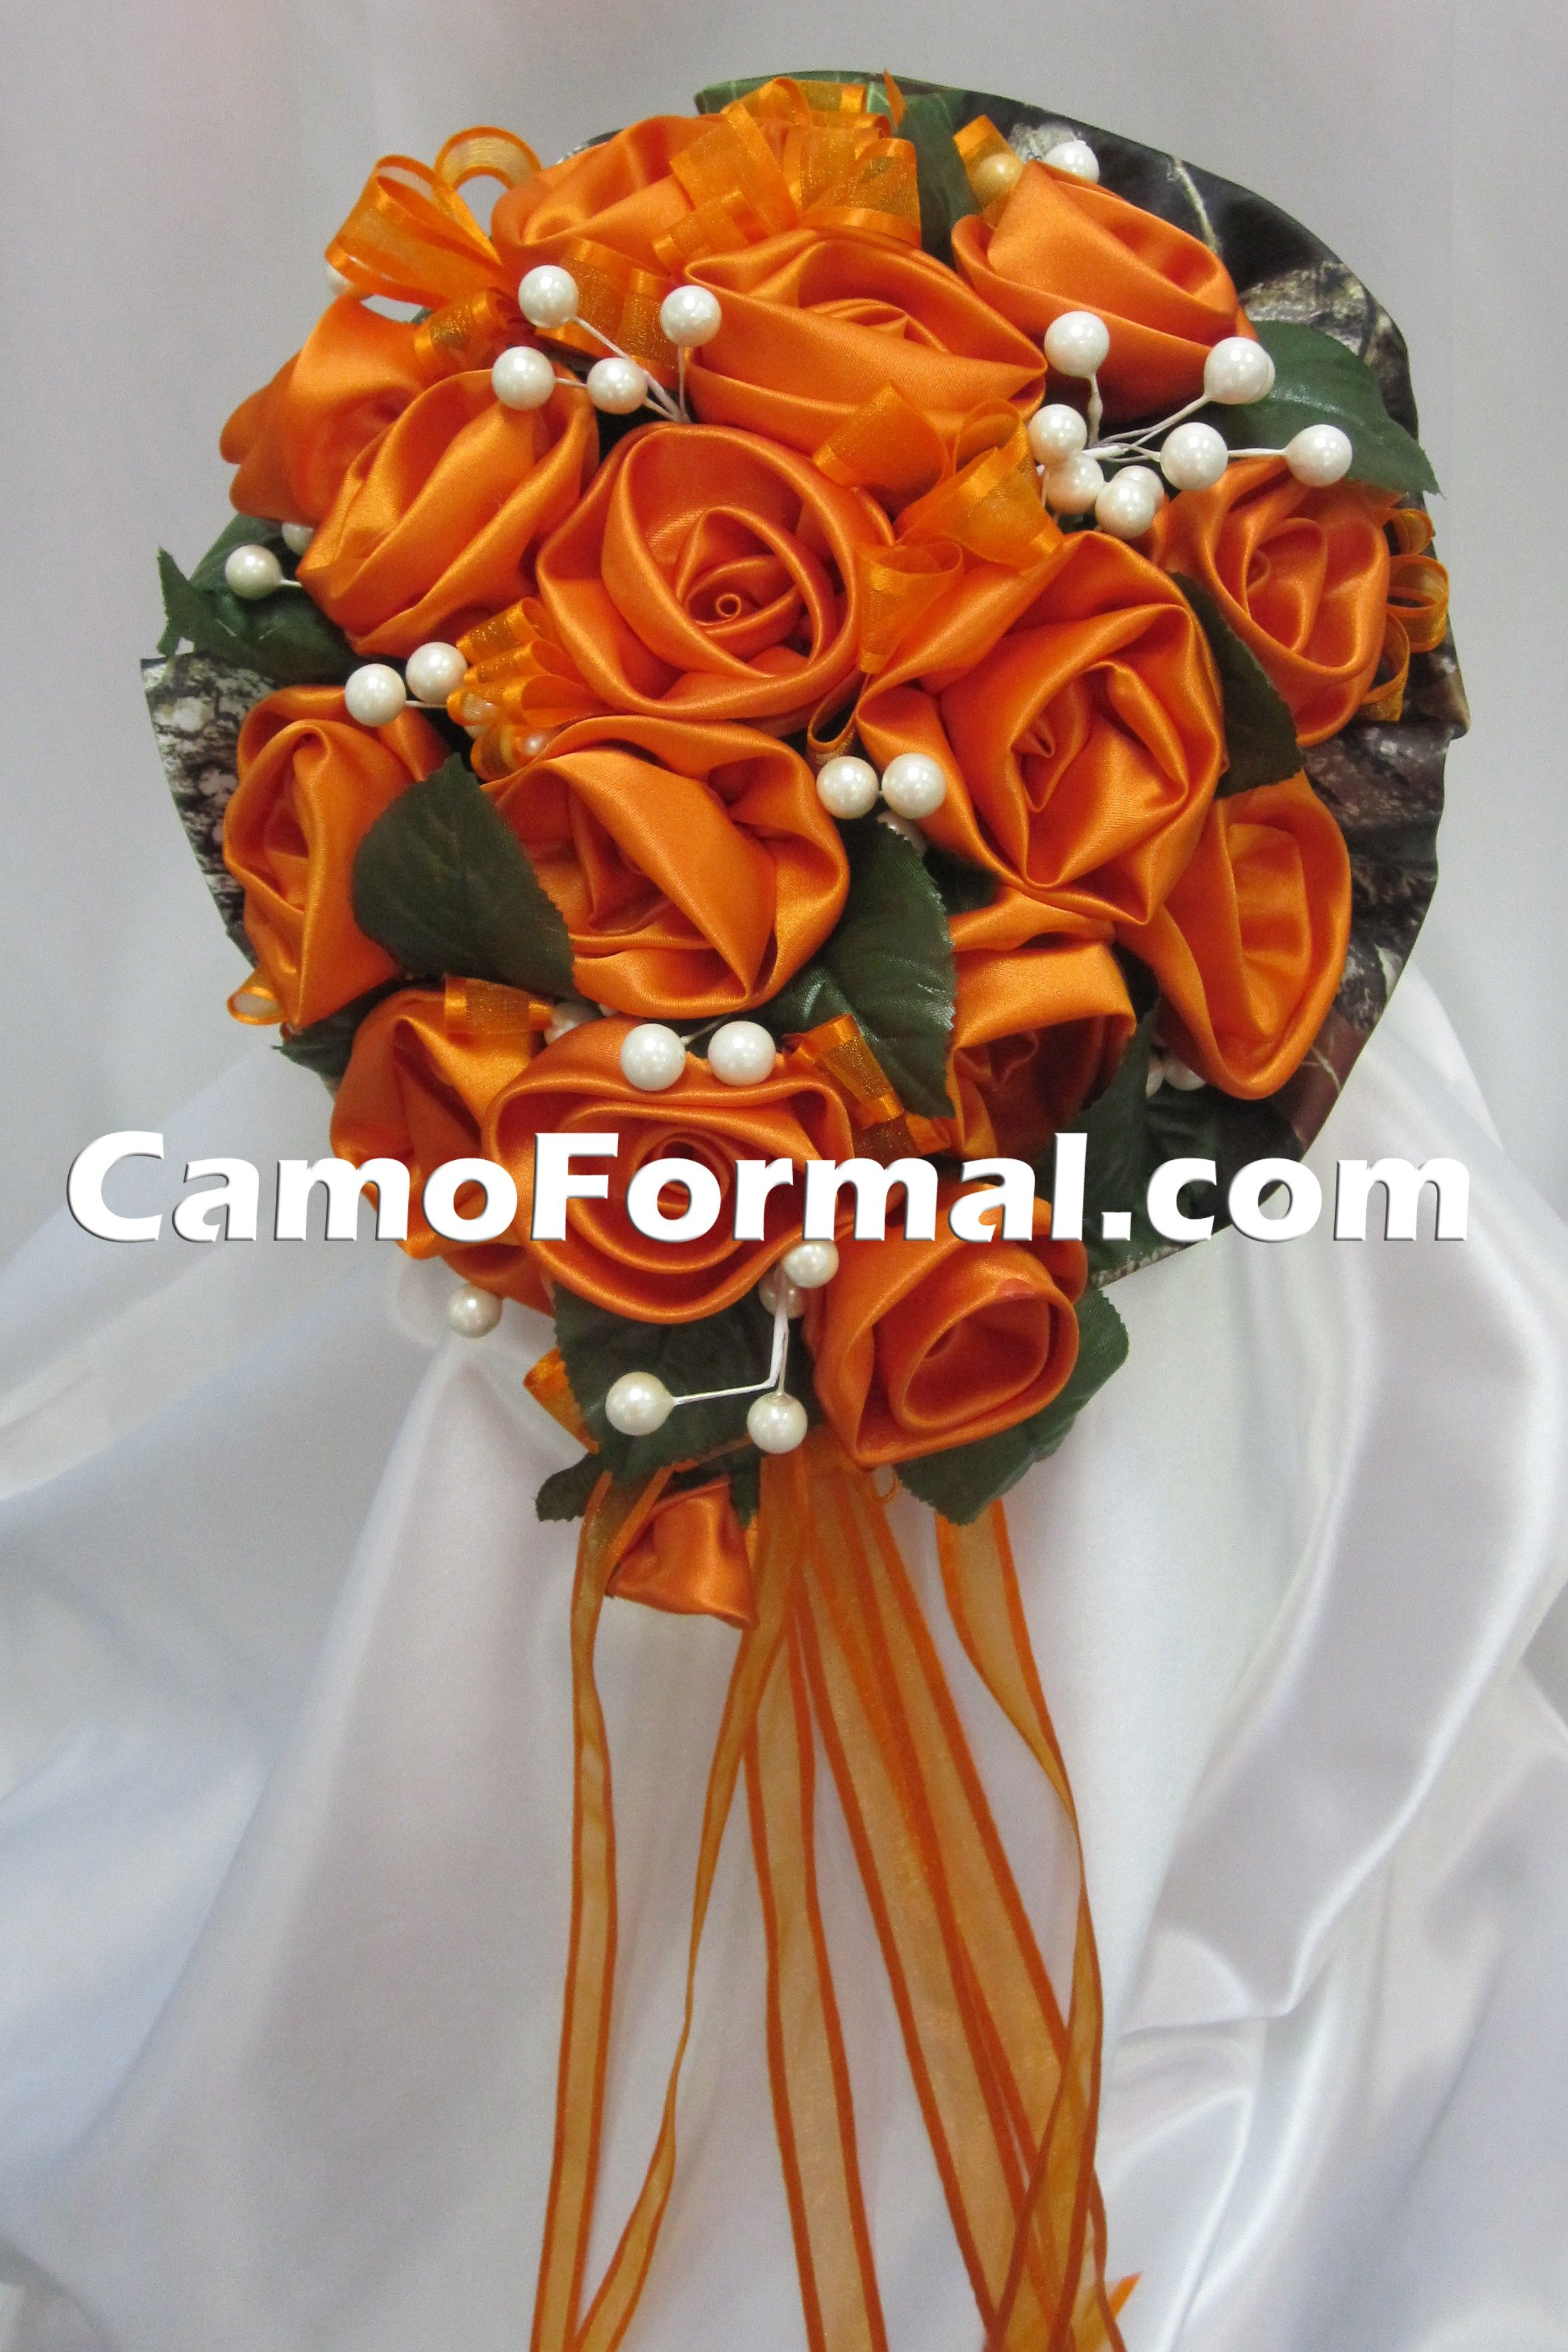 camo wedding ideas | Wedding Reception Decorations | Wedding ...